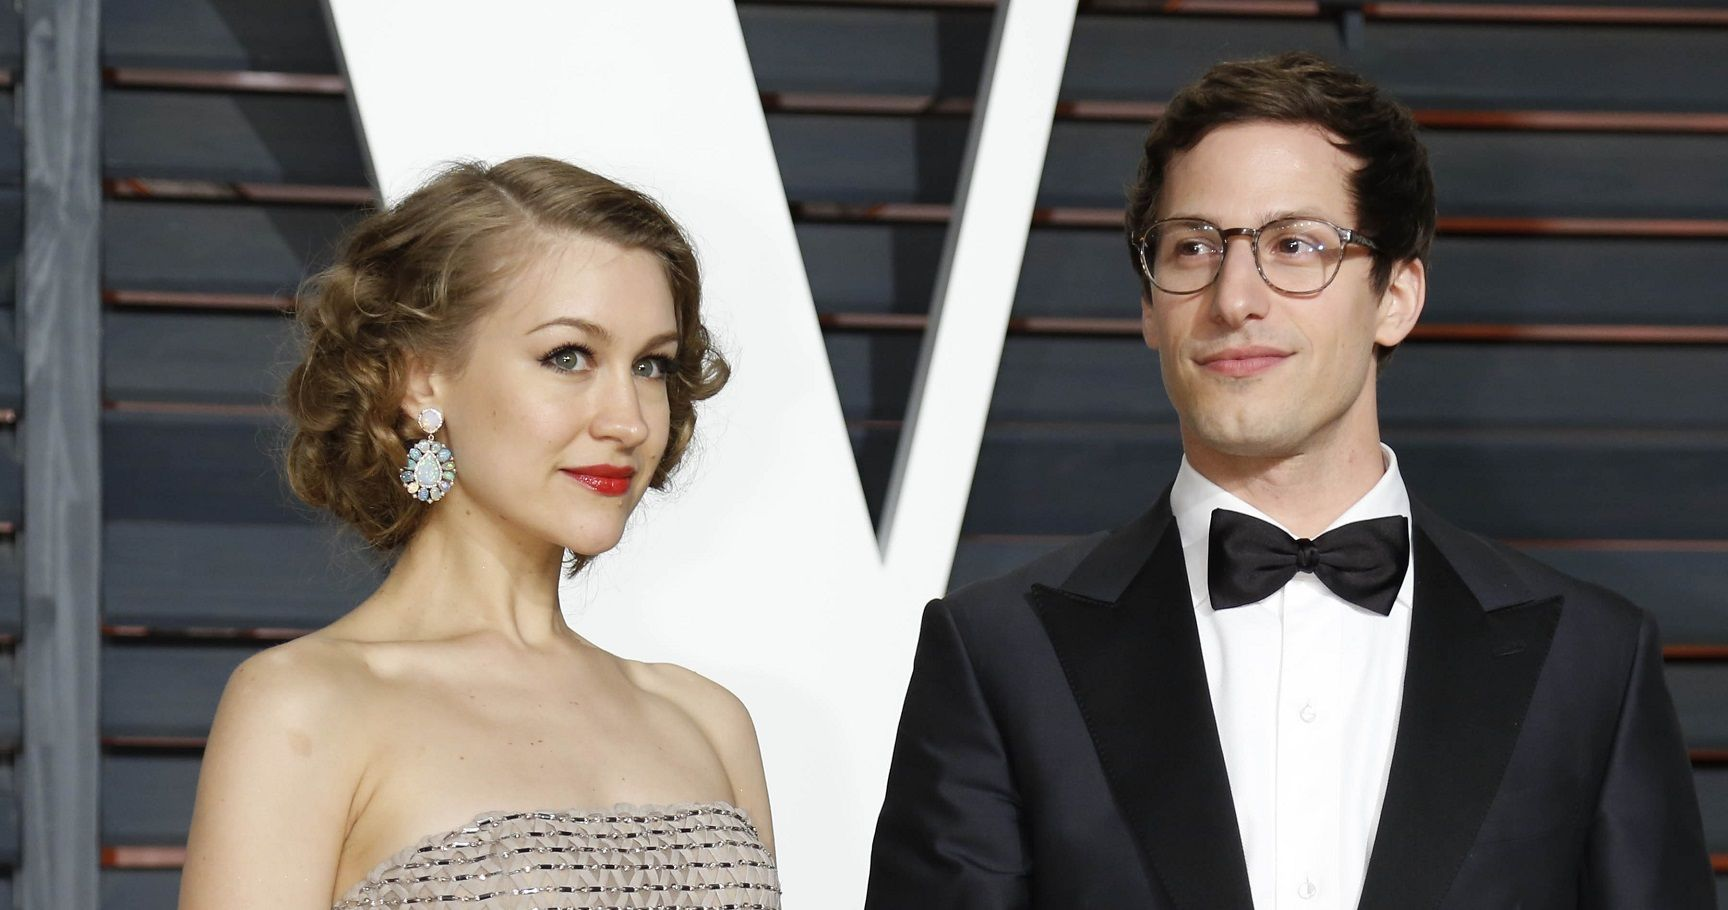 20 Surprising Celebrity Marriages You Probably Didn't Know About